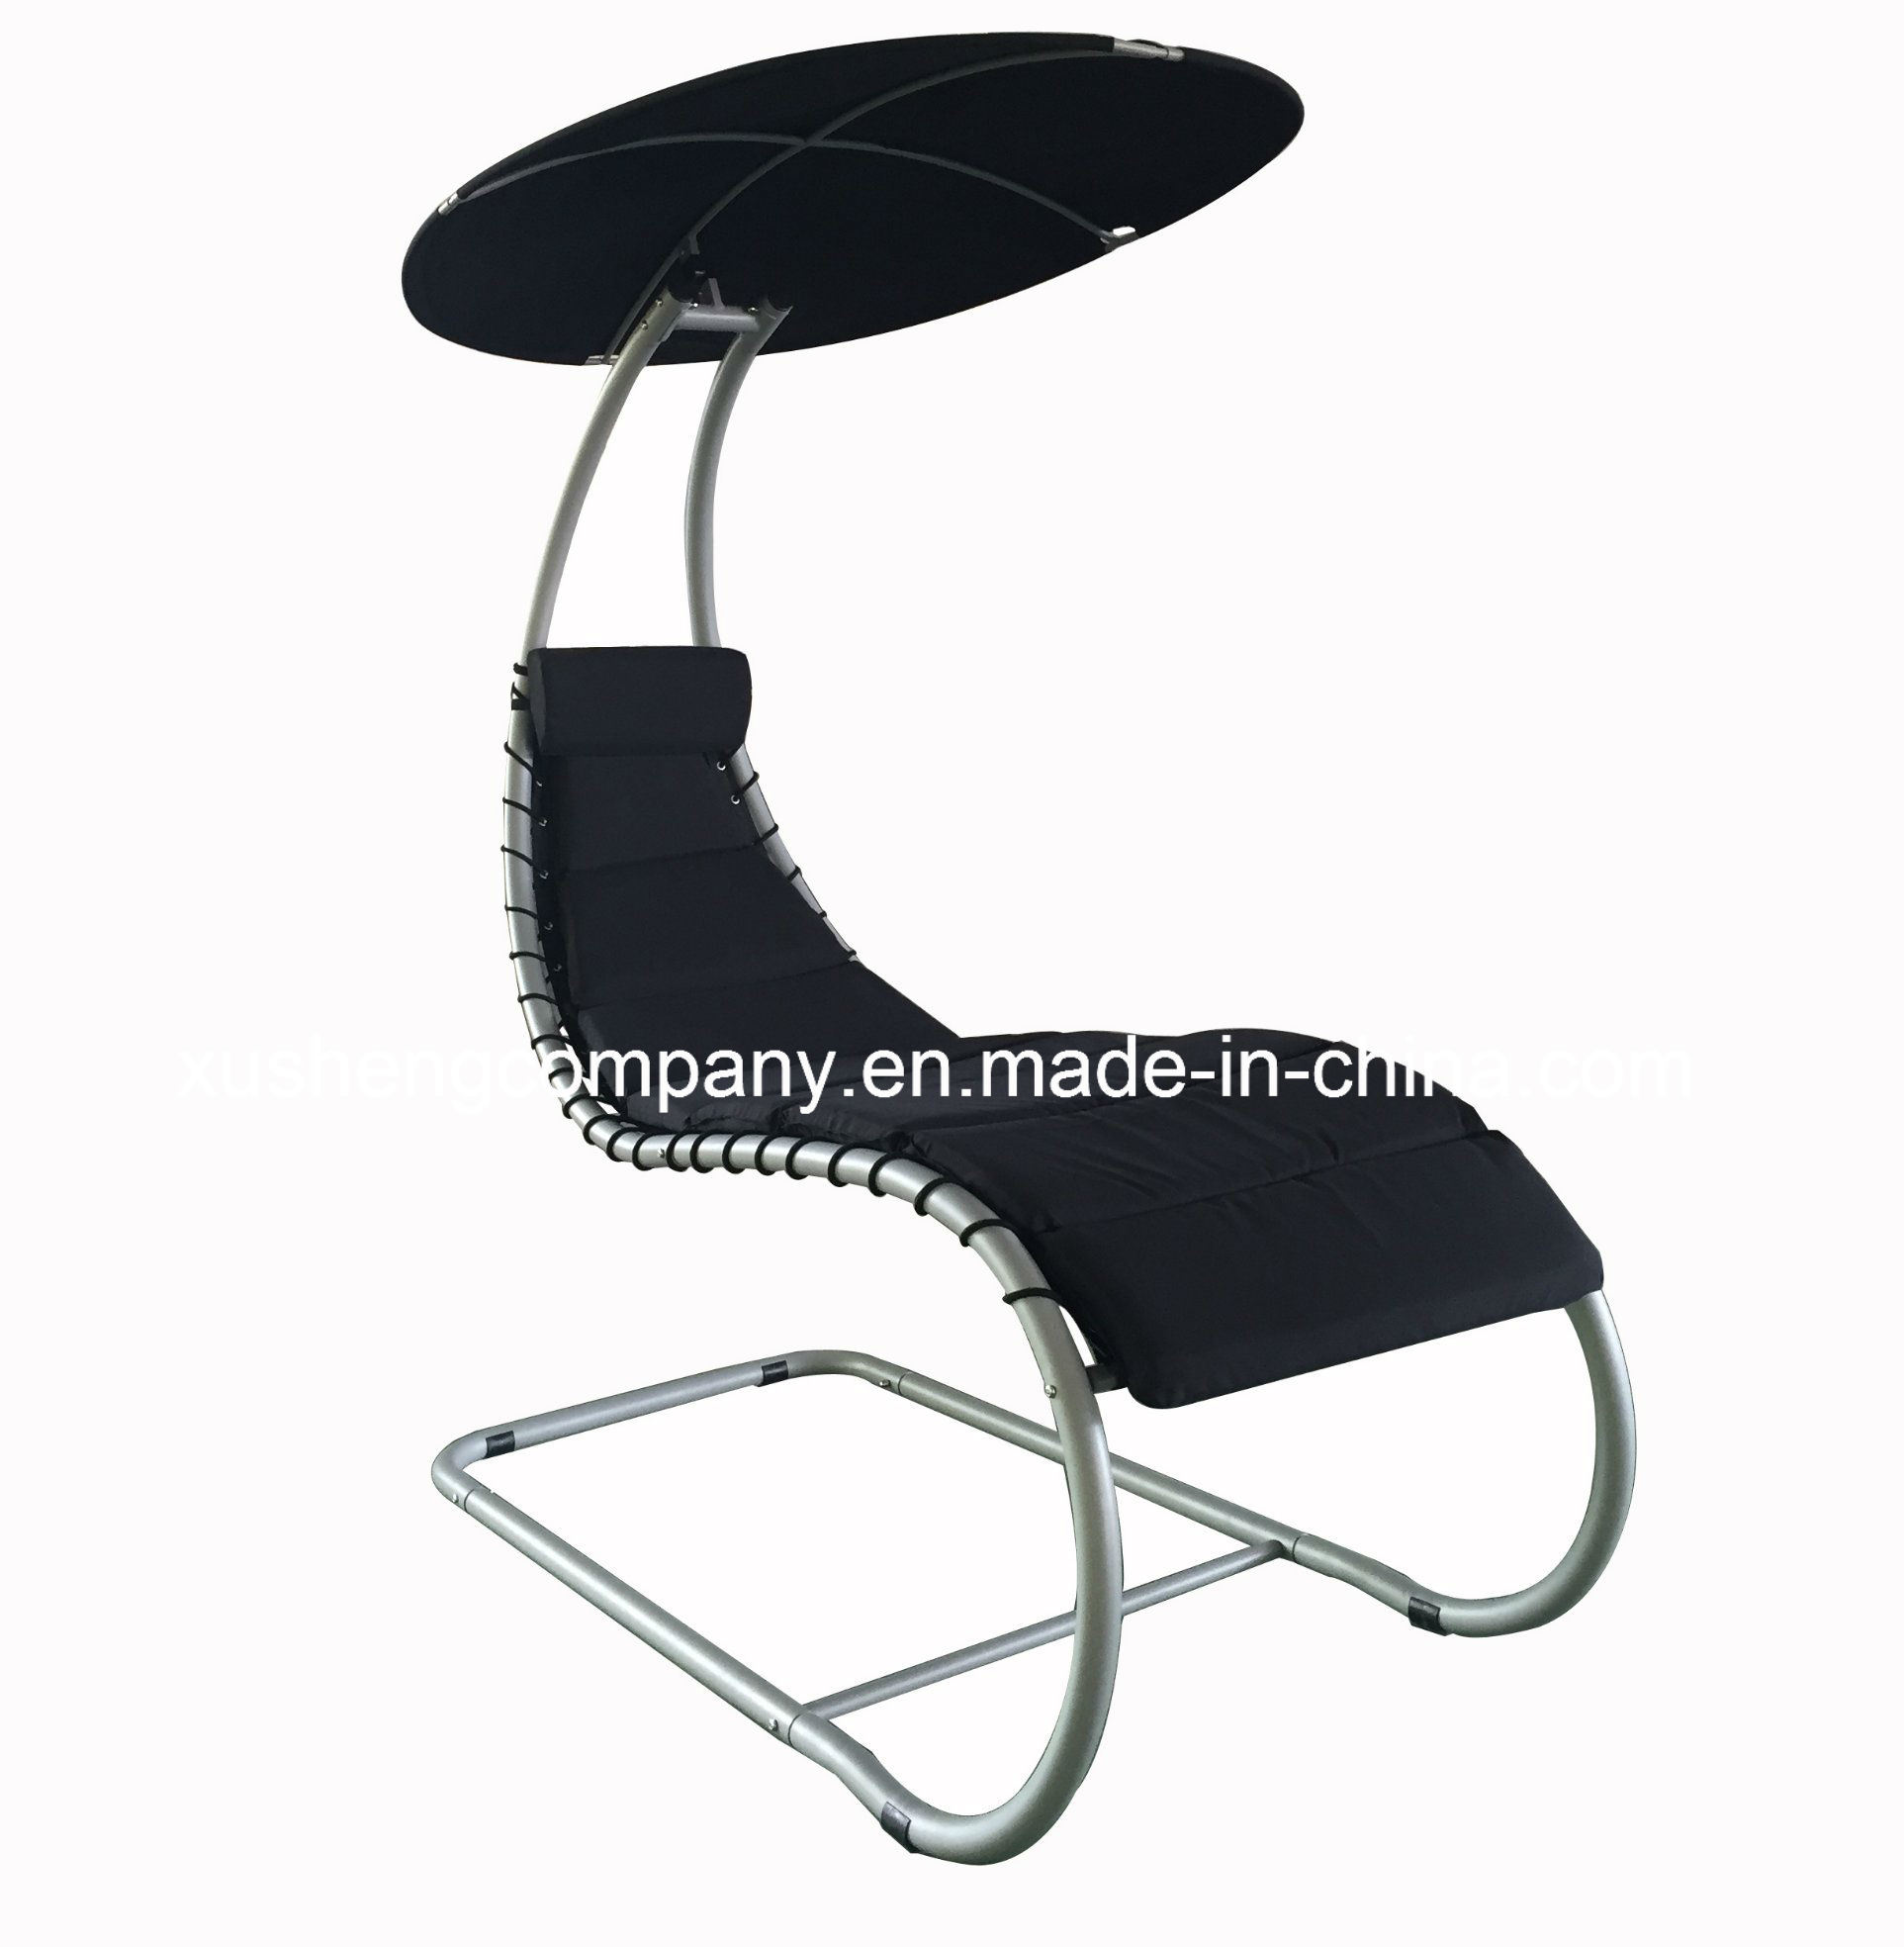 China popular patio hanging rocking swing chair bed china garden swing chair hanging chair